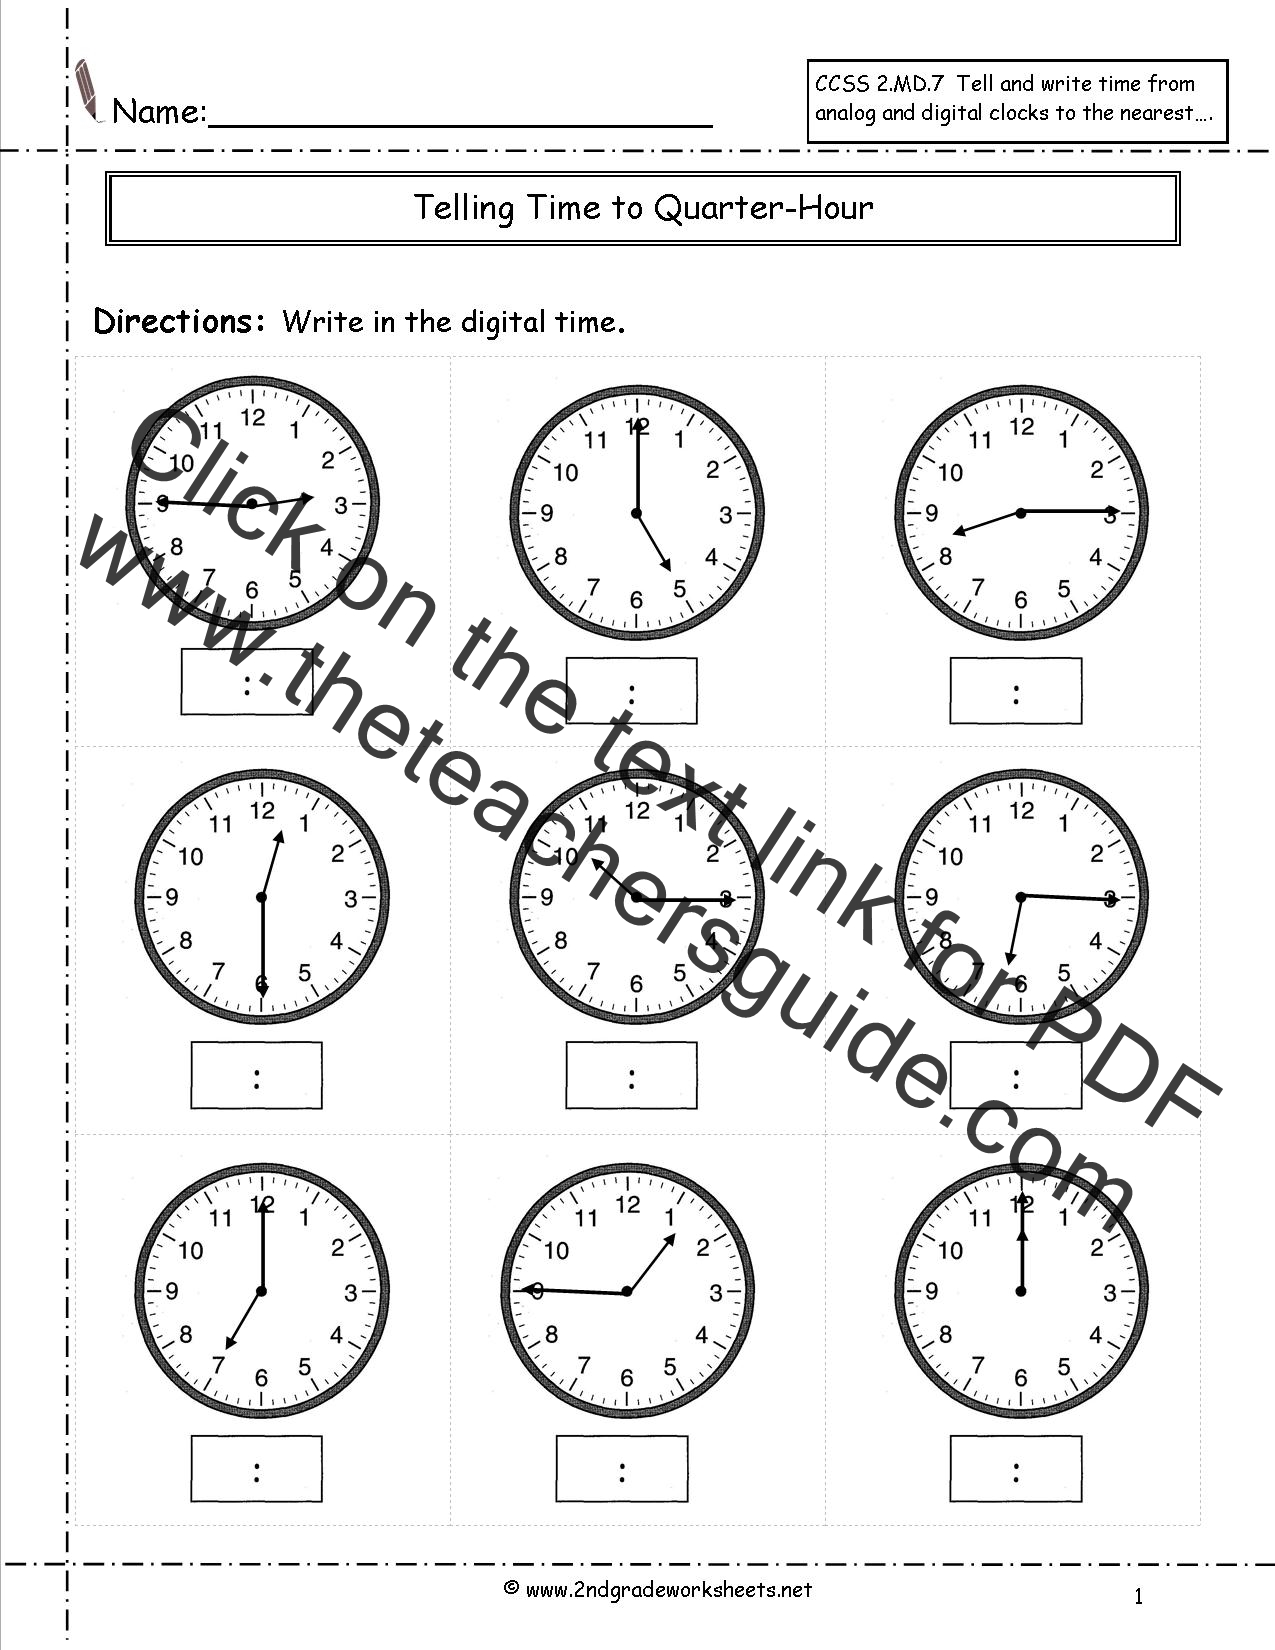 Worksheets Telling Time To The Hour And Half Hour Worksheets telling and writing time worksheets to the nearest quarter hour 2 3